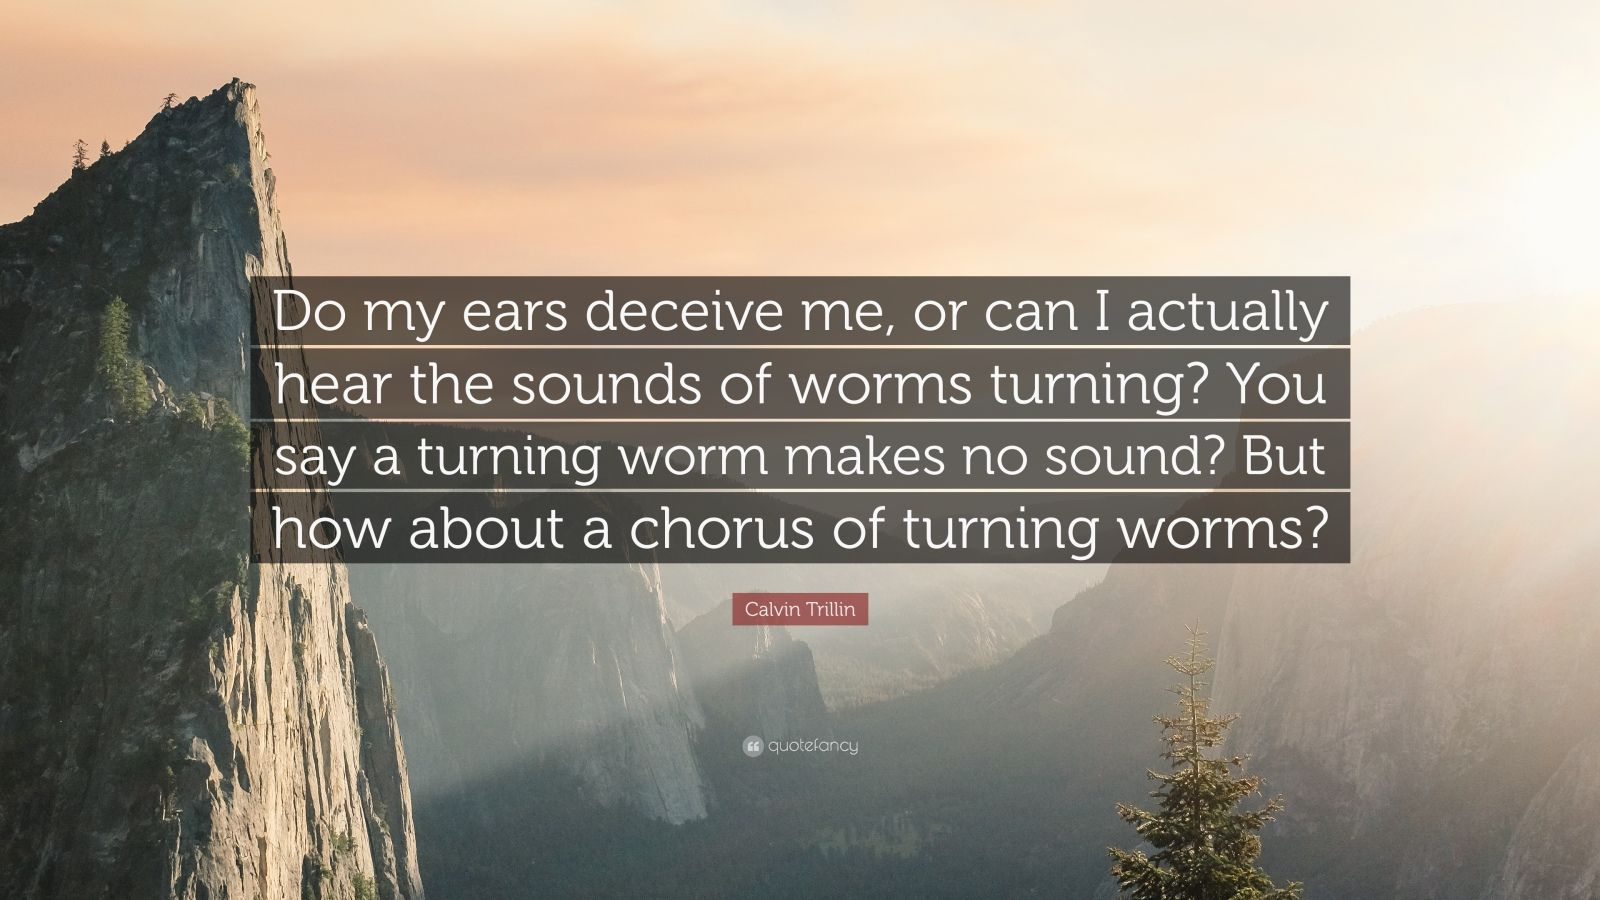 """Calvin Trillin Quote: """"Do my ears deceive me, or can I actually hear the sounds of worms turning? You say a turning worm makes no sound? But how about a chorus of turning worms?"""""""